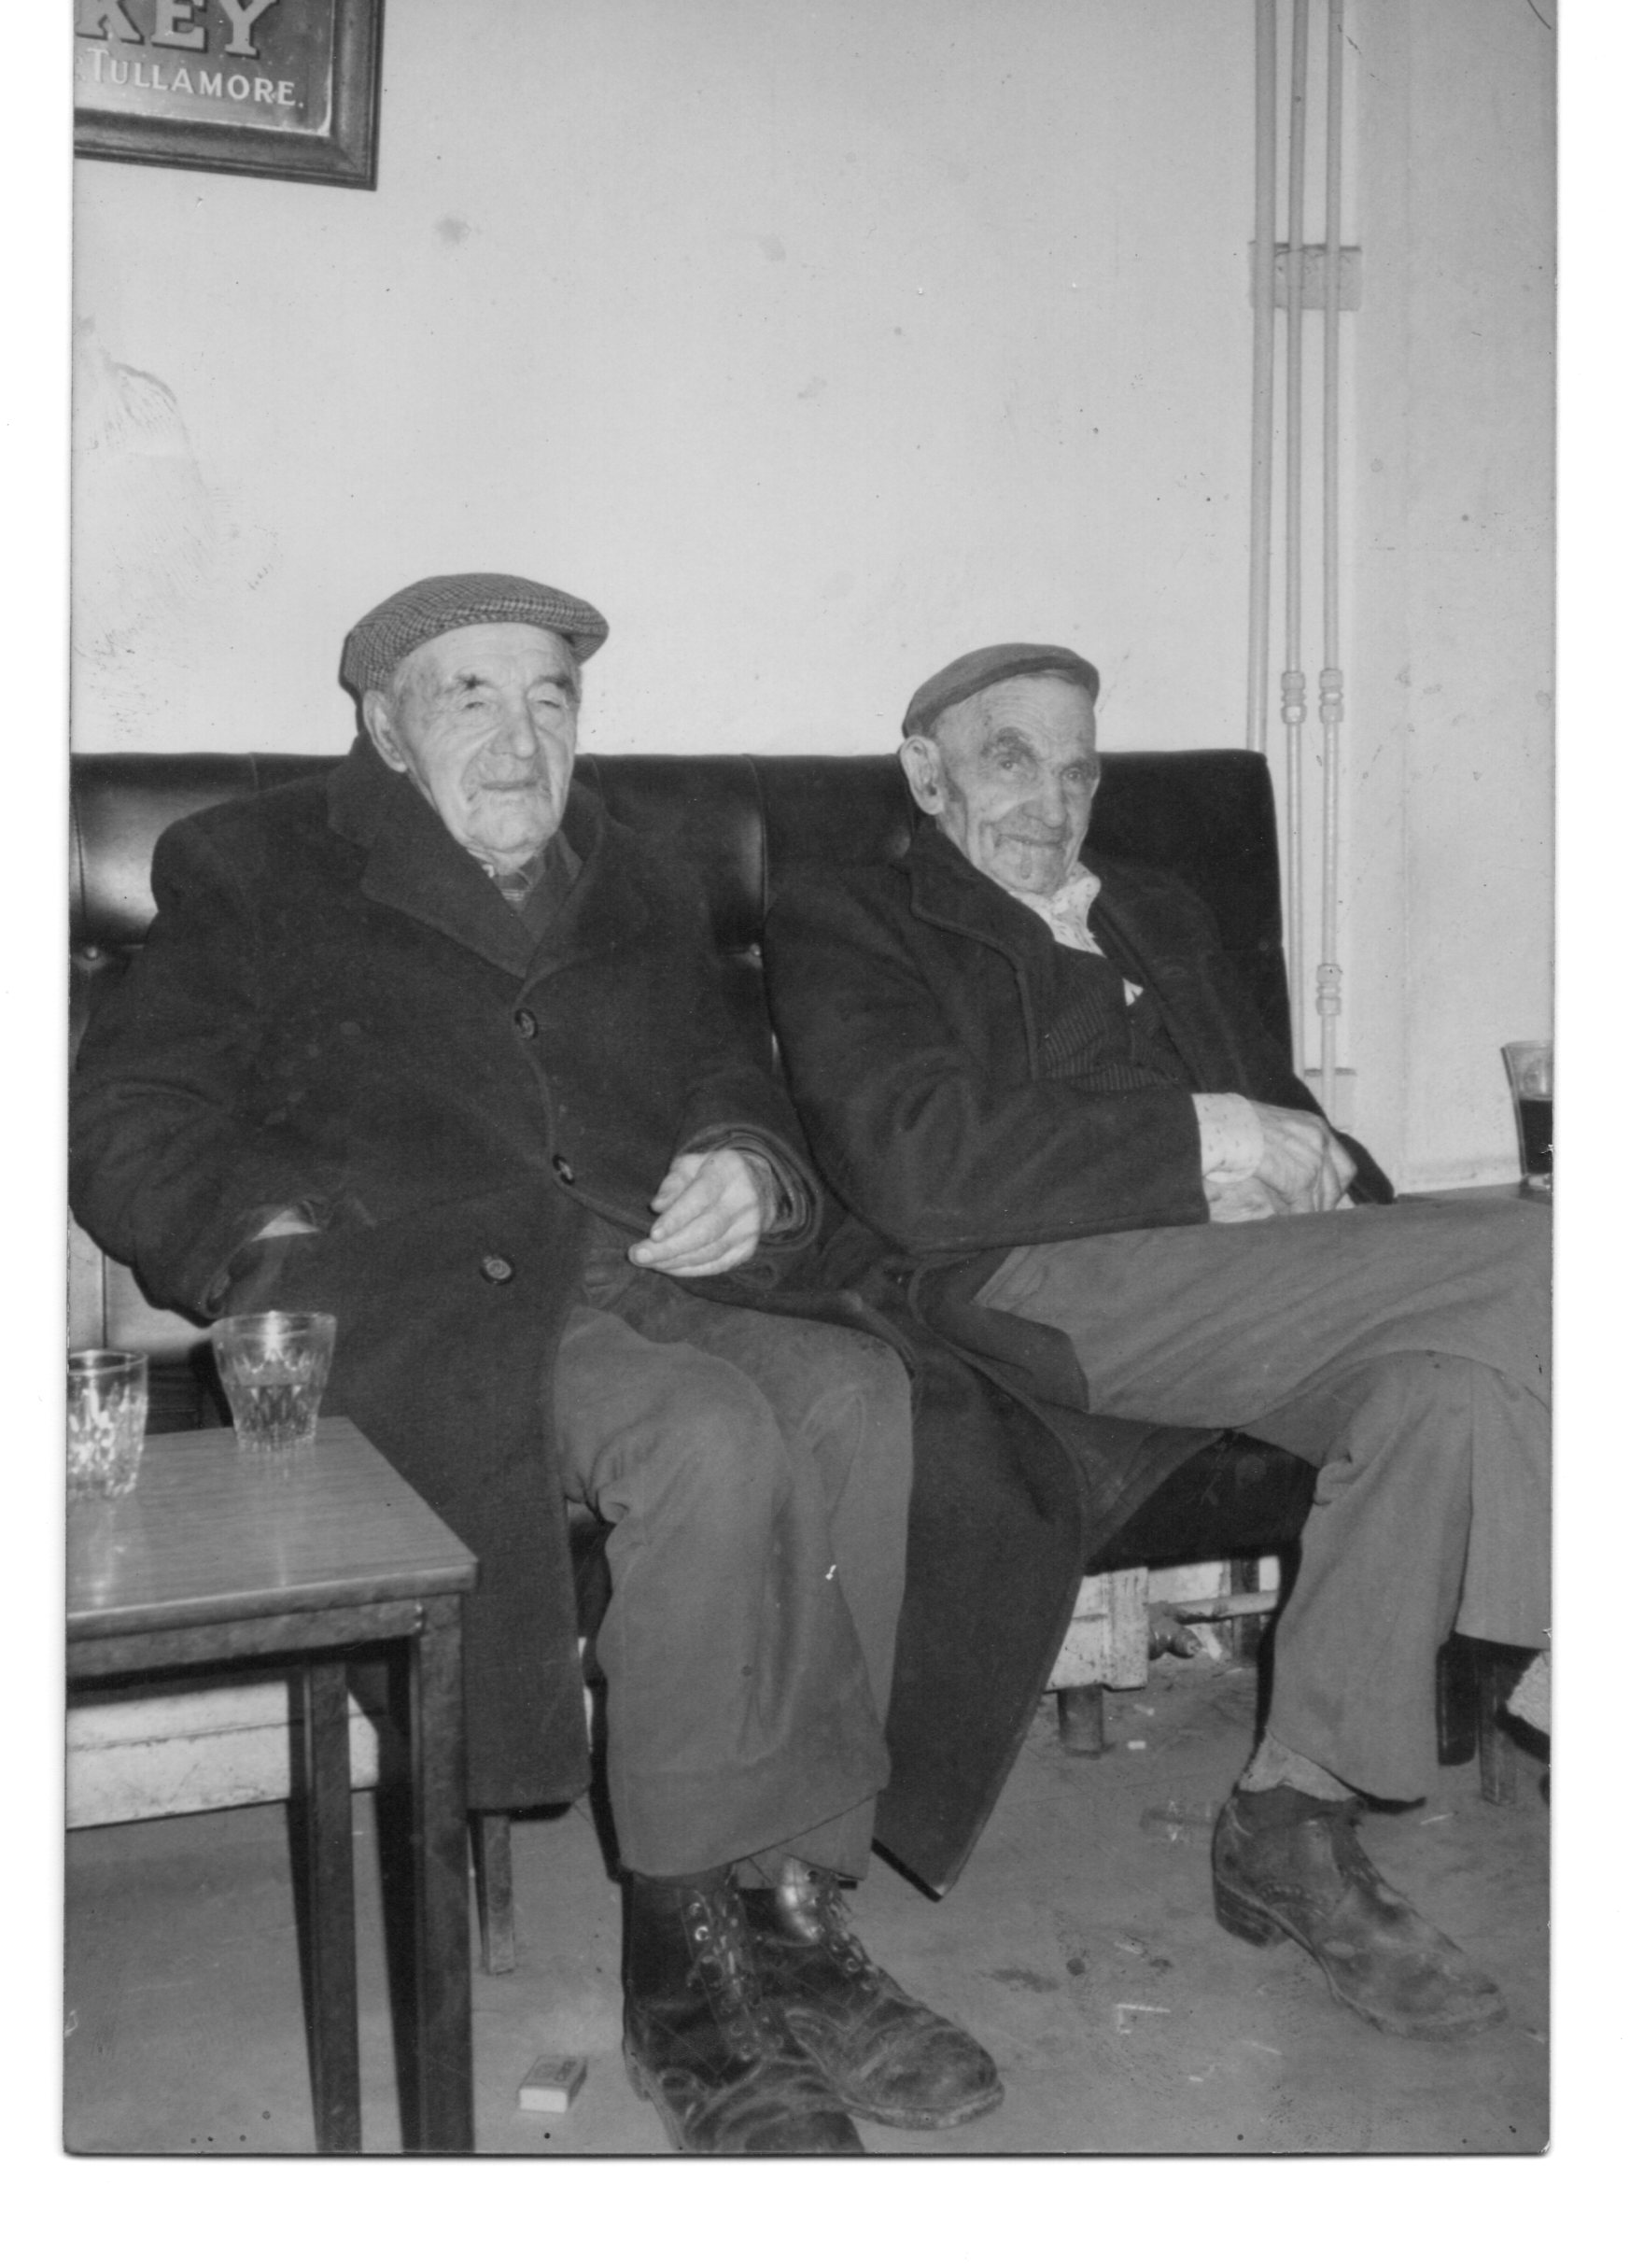 Two happy and contented men Francis Muldoon and Brown Fahy